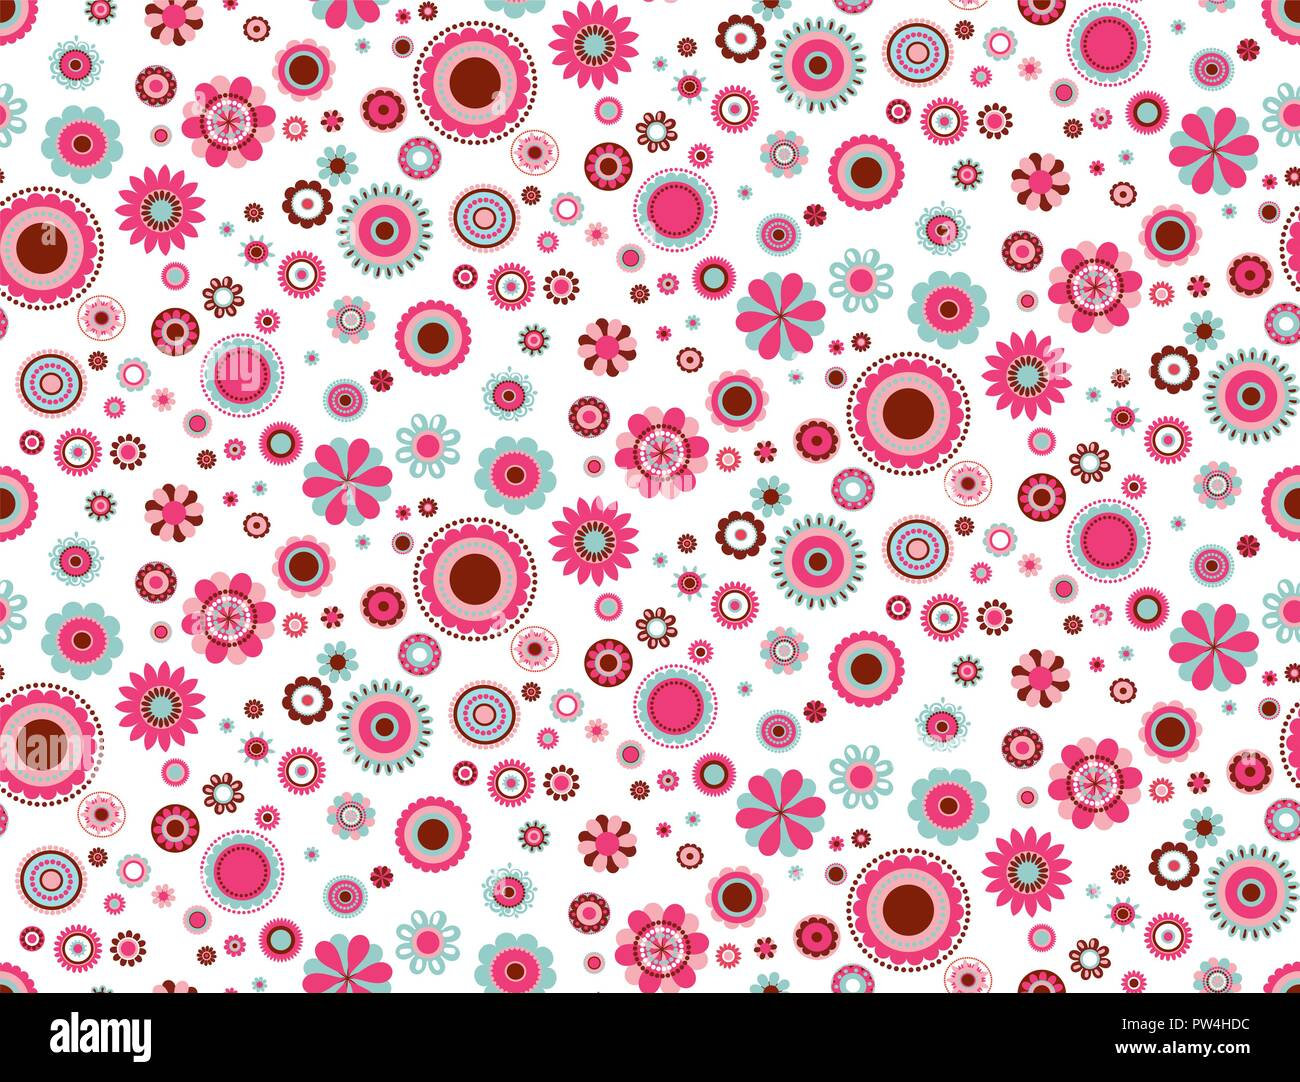 Vector Colorful Abstract Flowers Seamless Pattern On White Background Perfect For Fabric Quilting Scrapbook Paper Wallpaper And Crafts Stock Vector Image Art Alamy